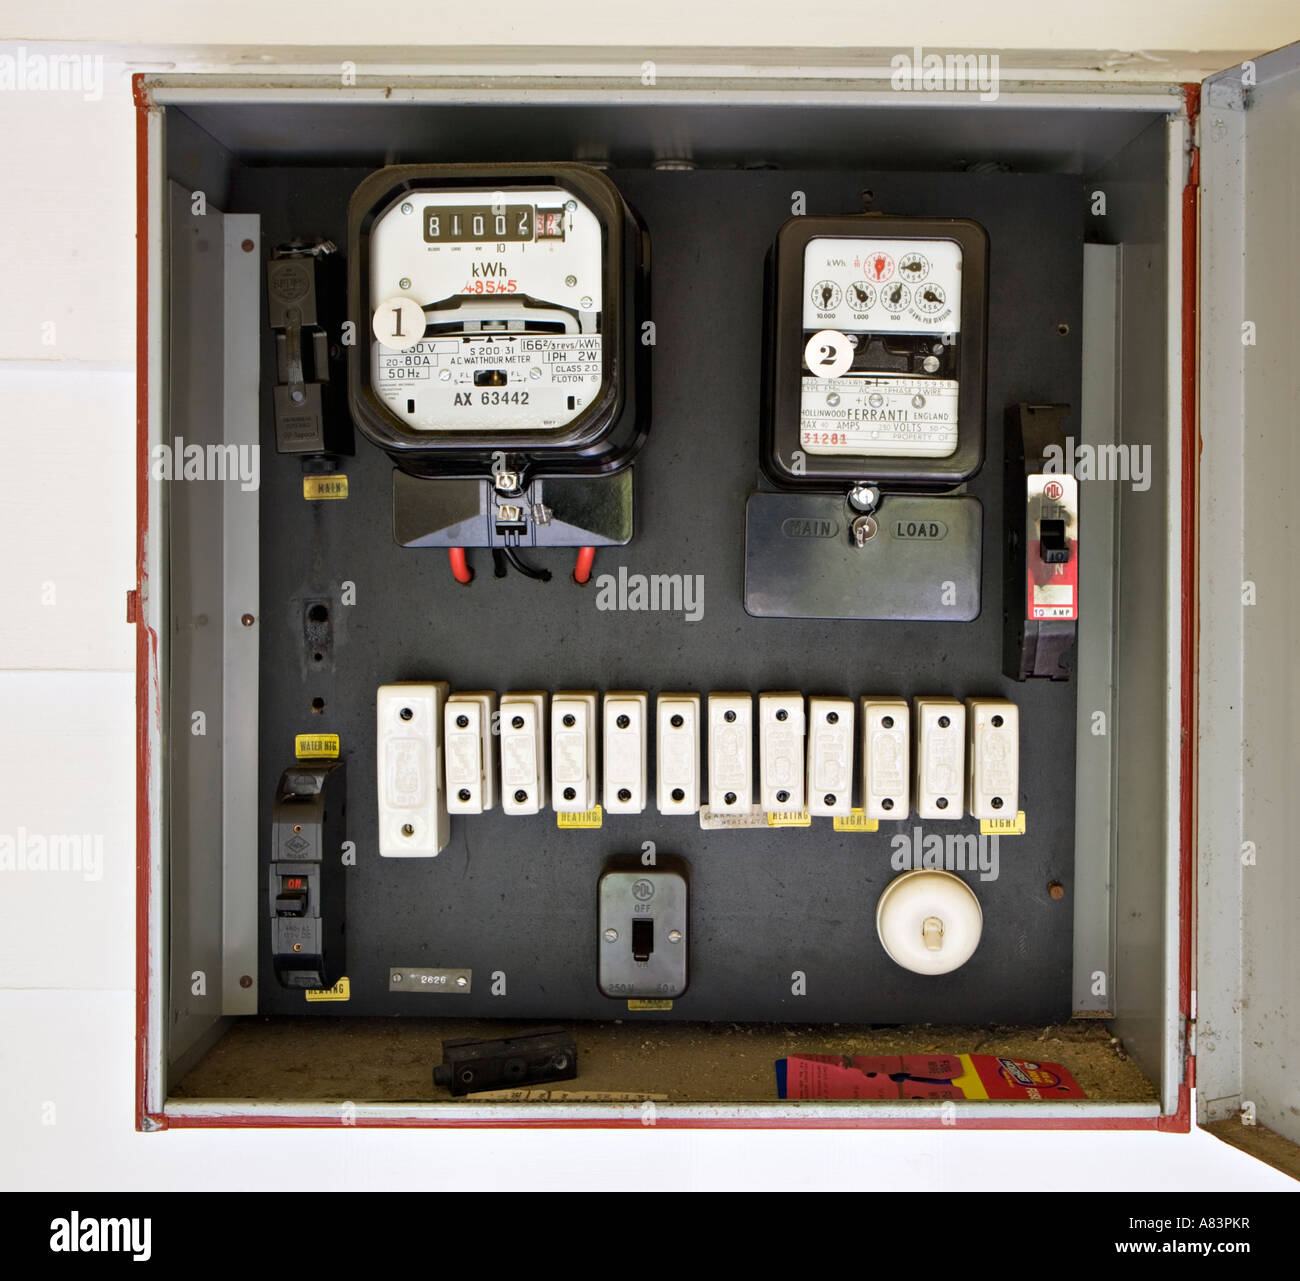 electricity meter in box with old style fuses circa 1962 in new rh alamy com Electric Fuse Box Wiring Home Electrical Fuse Box